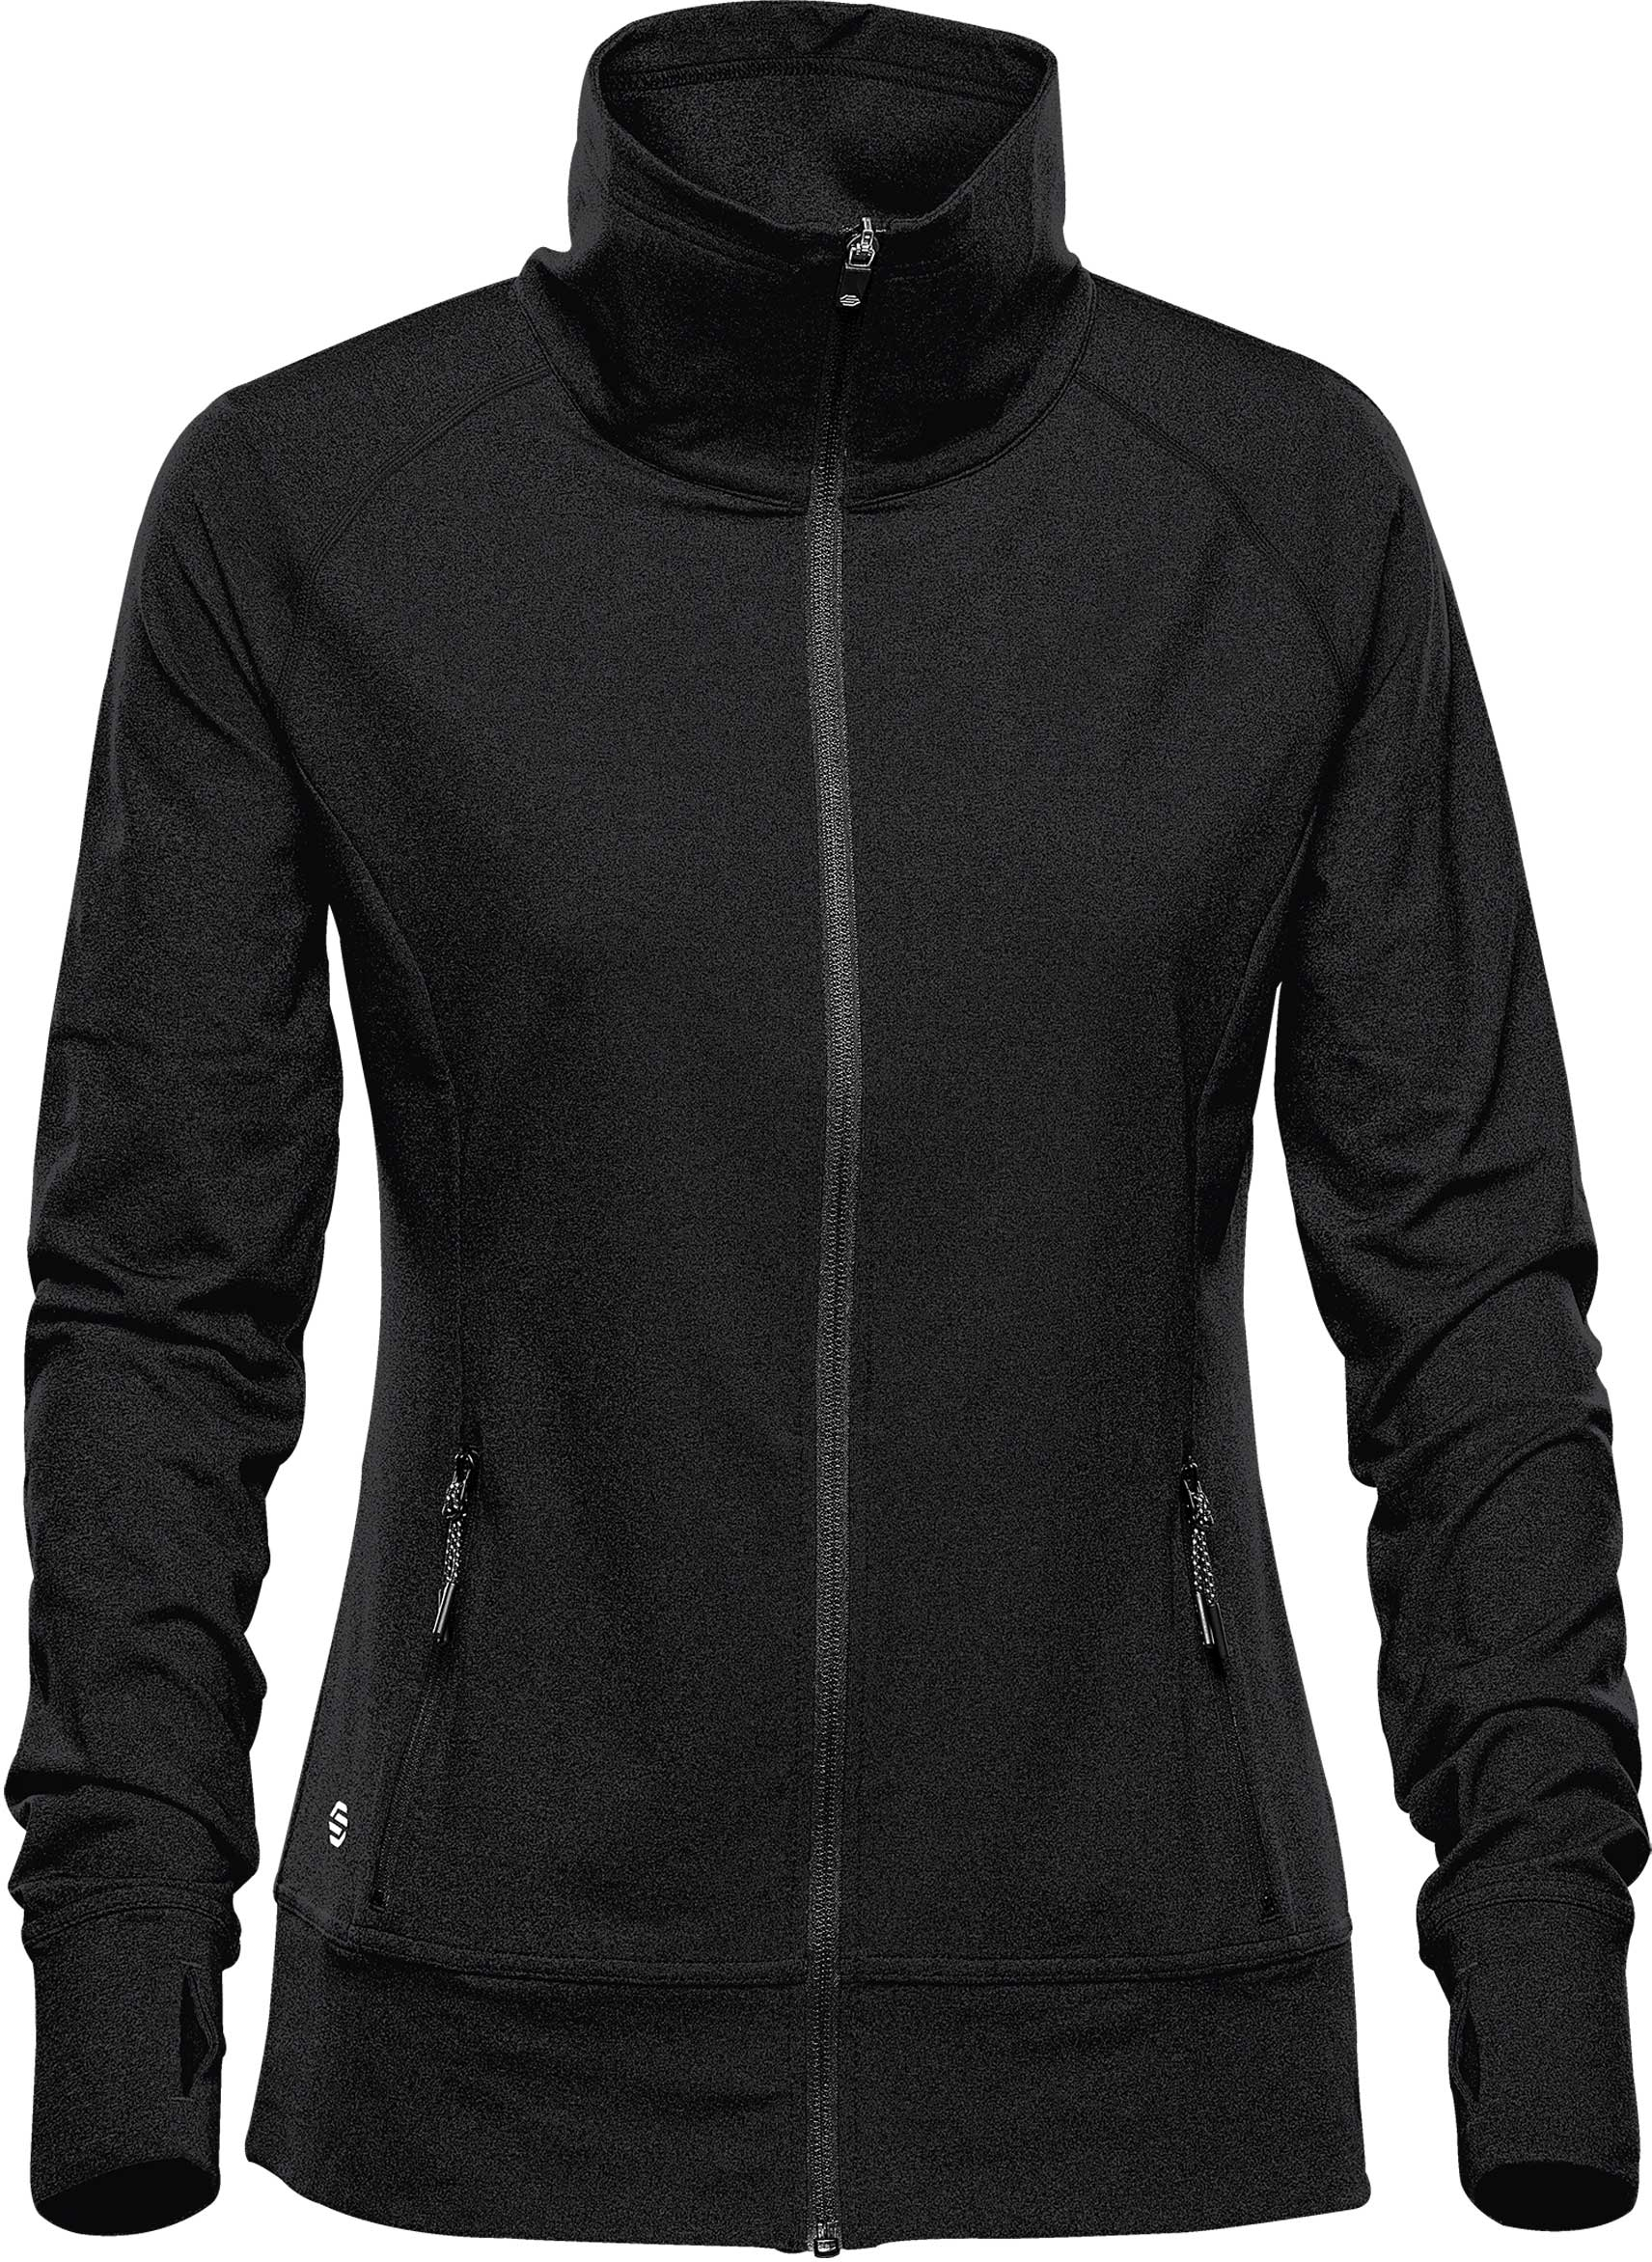 Picture of Stormtech Women's Pacifica Jacket